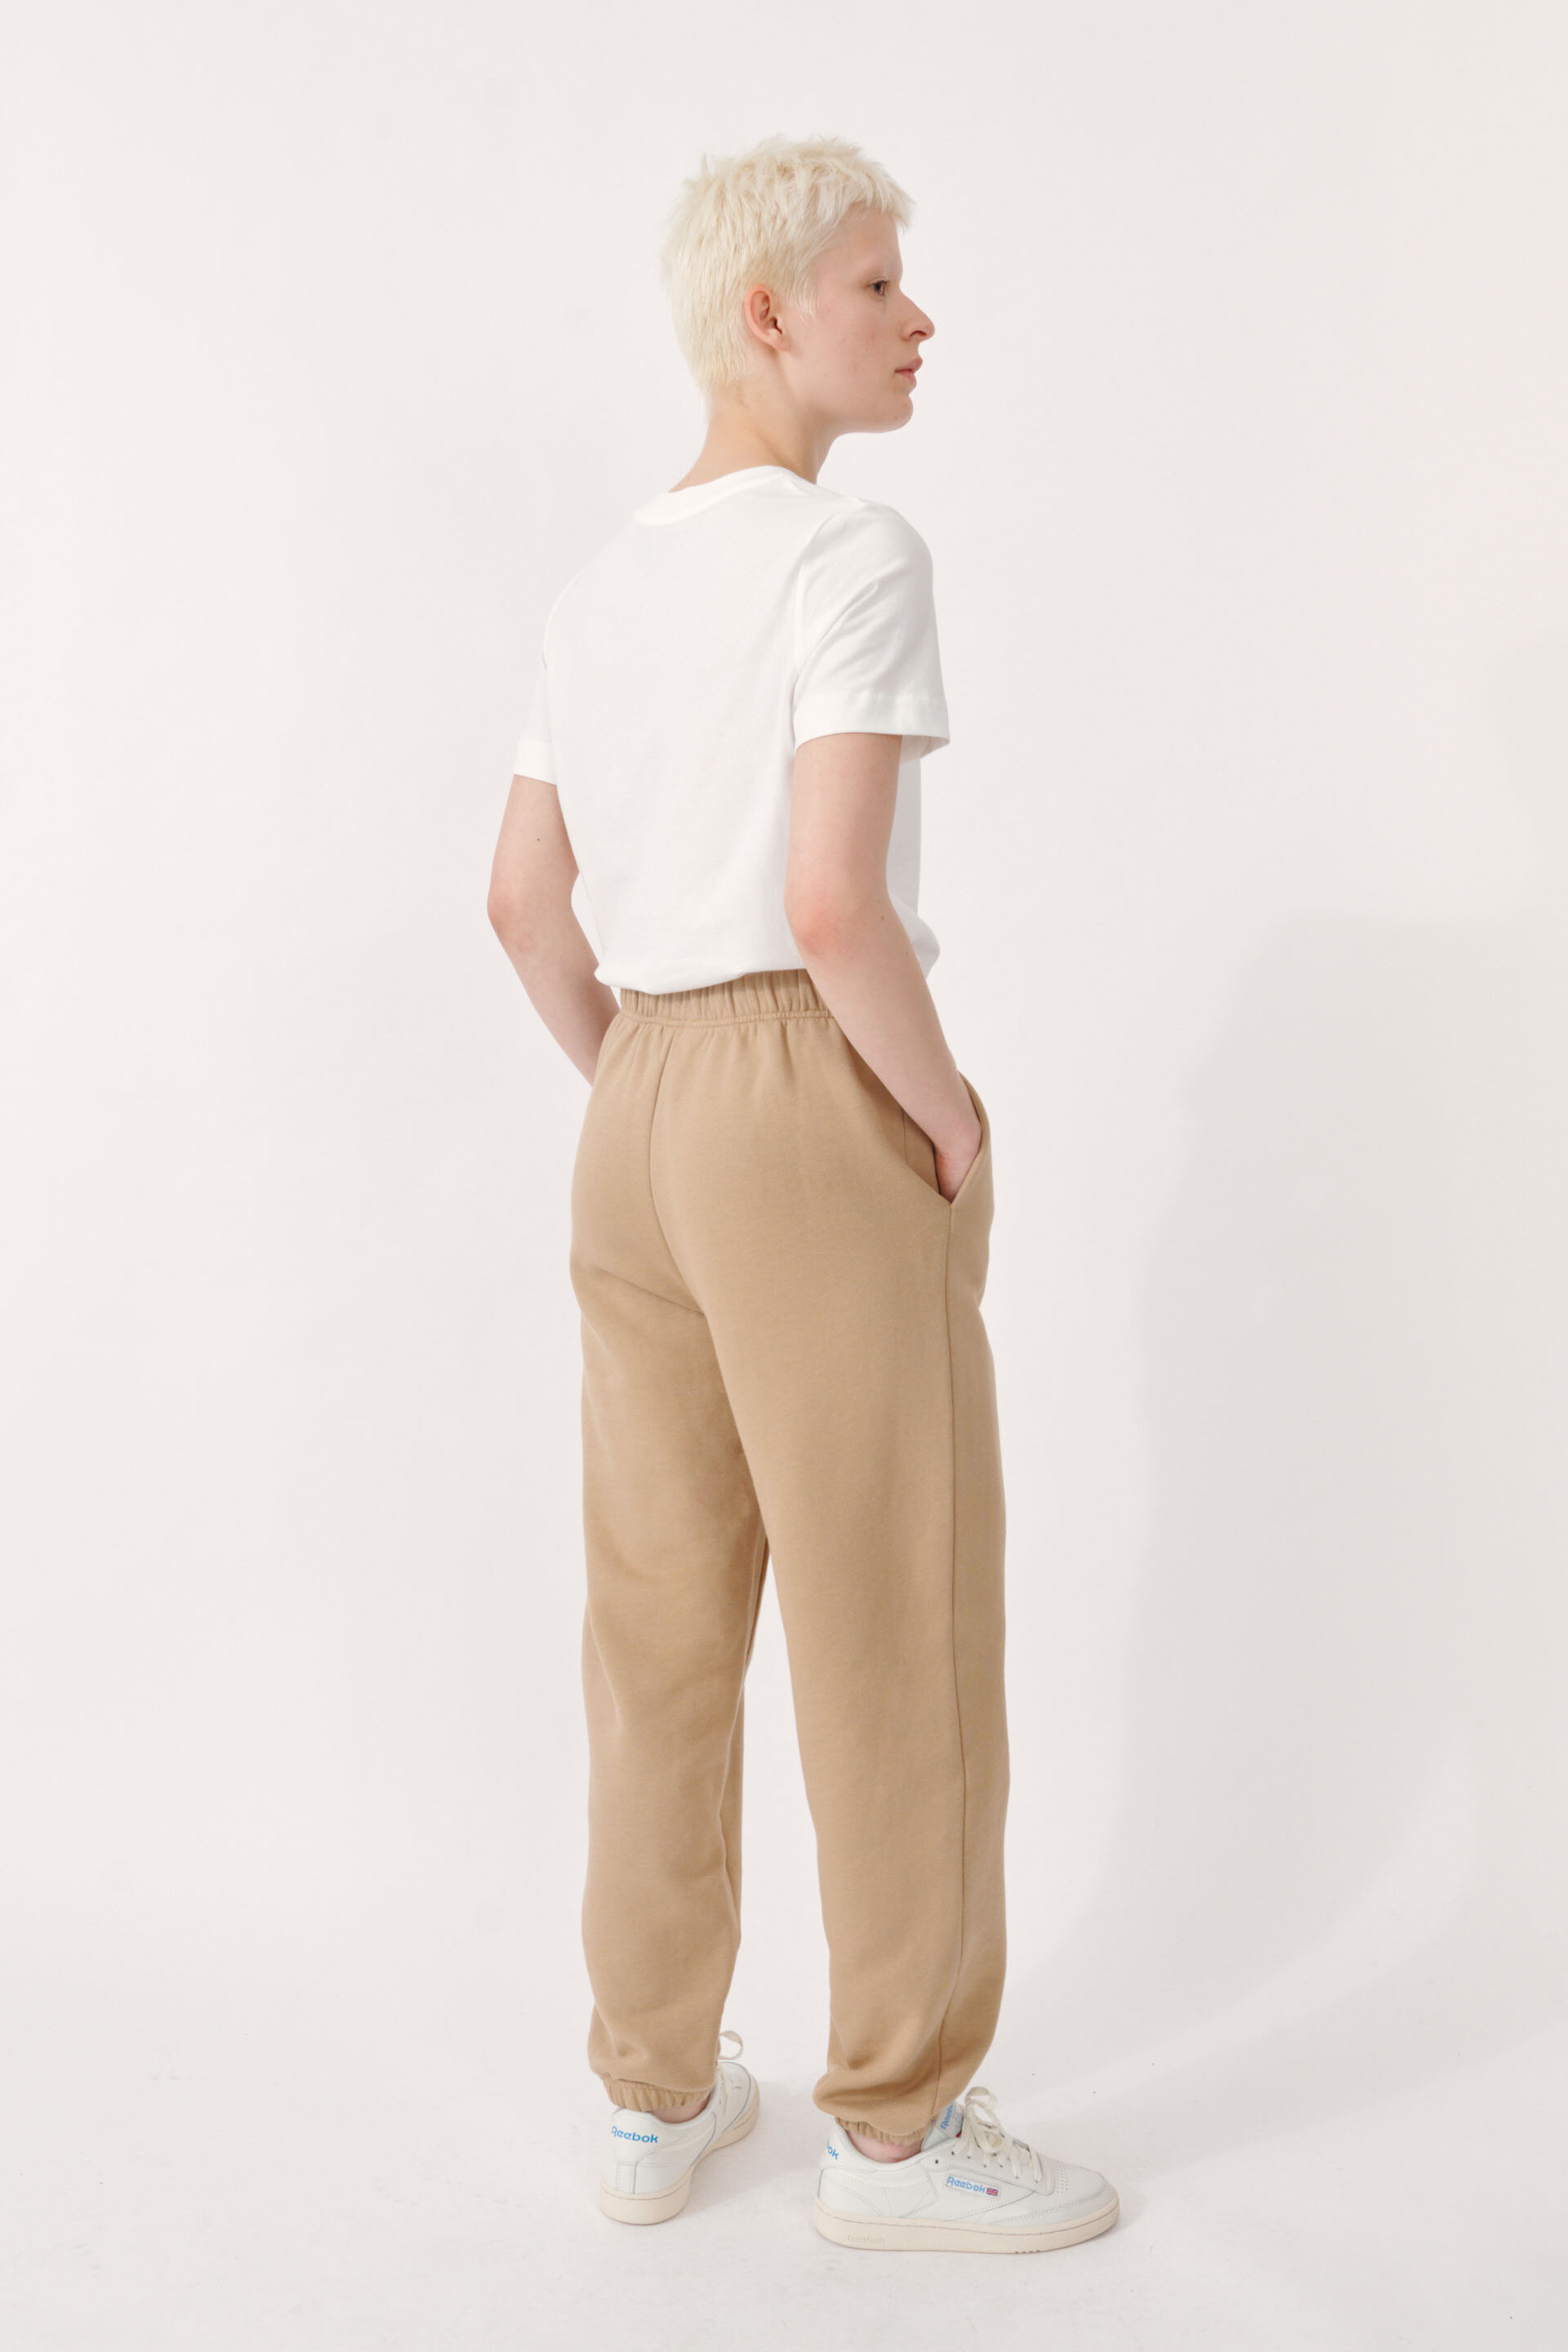 Jeantelle Trousers Camel These thick, loose sweatpants feature a fleecy interior, pockets, printed logo at the side, and drawstring inside - detail image